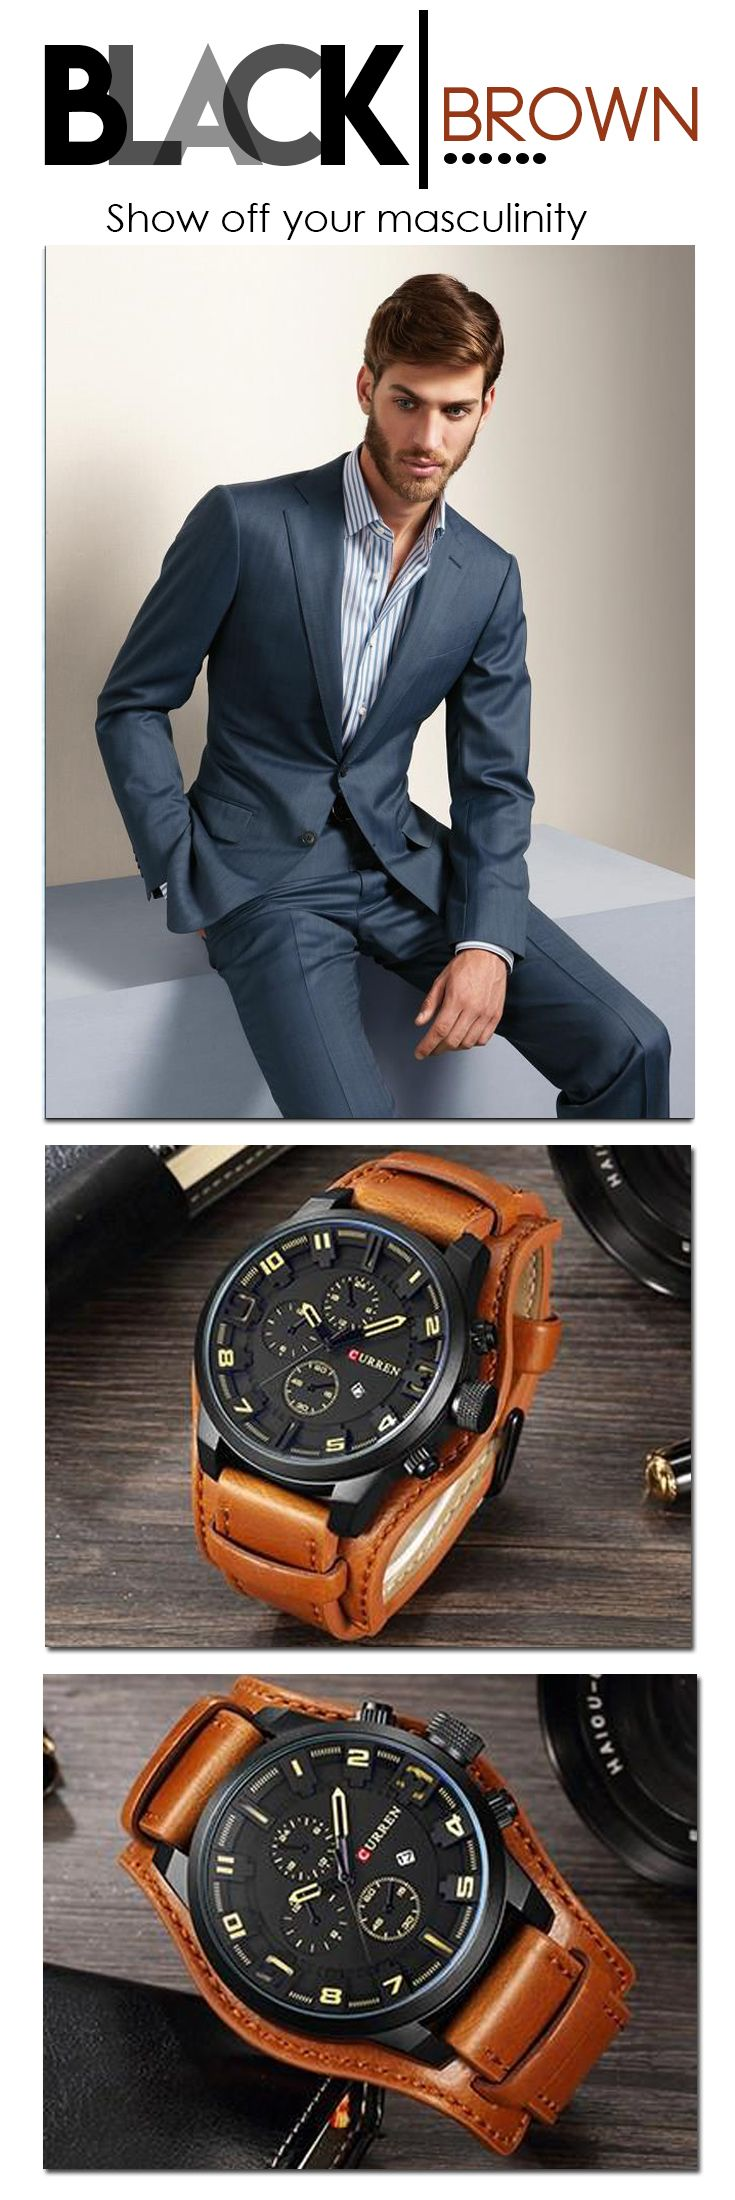 The Luxury business watch you need - we all have the same amount of time, use every second to look good and fulfill your desires------------------  2018 curren Watches Men Watch Luxury Famous Brand Chronograph Men Watches Male Clock Sports Leather Quartz-Watch Reloj Hombre business watch casual fashion #menswatch #mensfashion